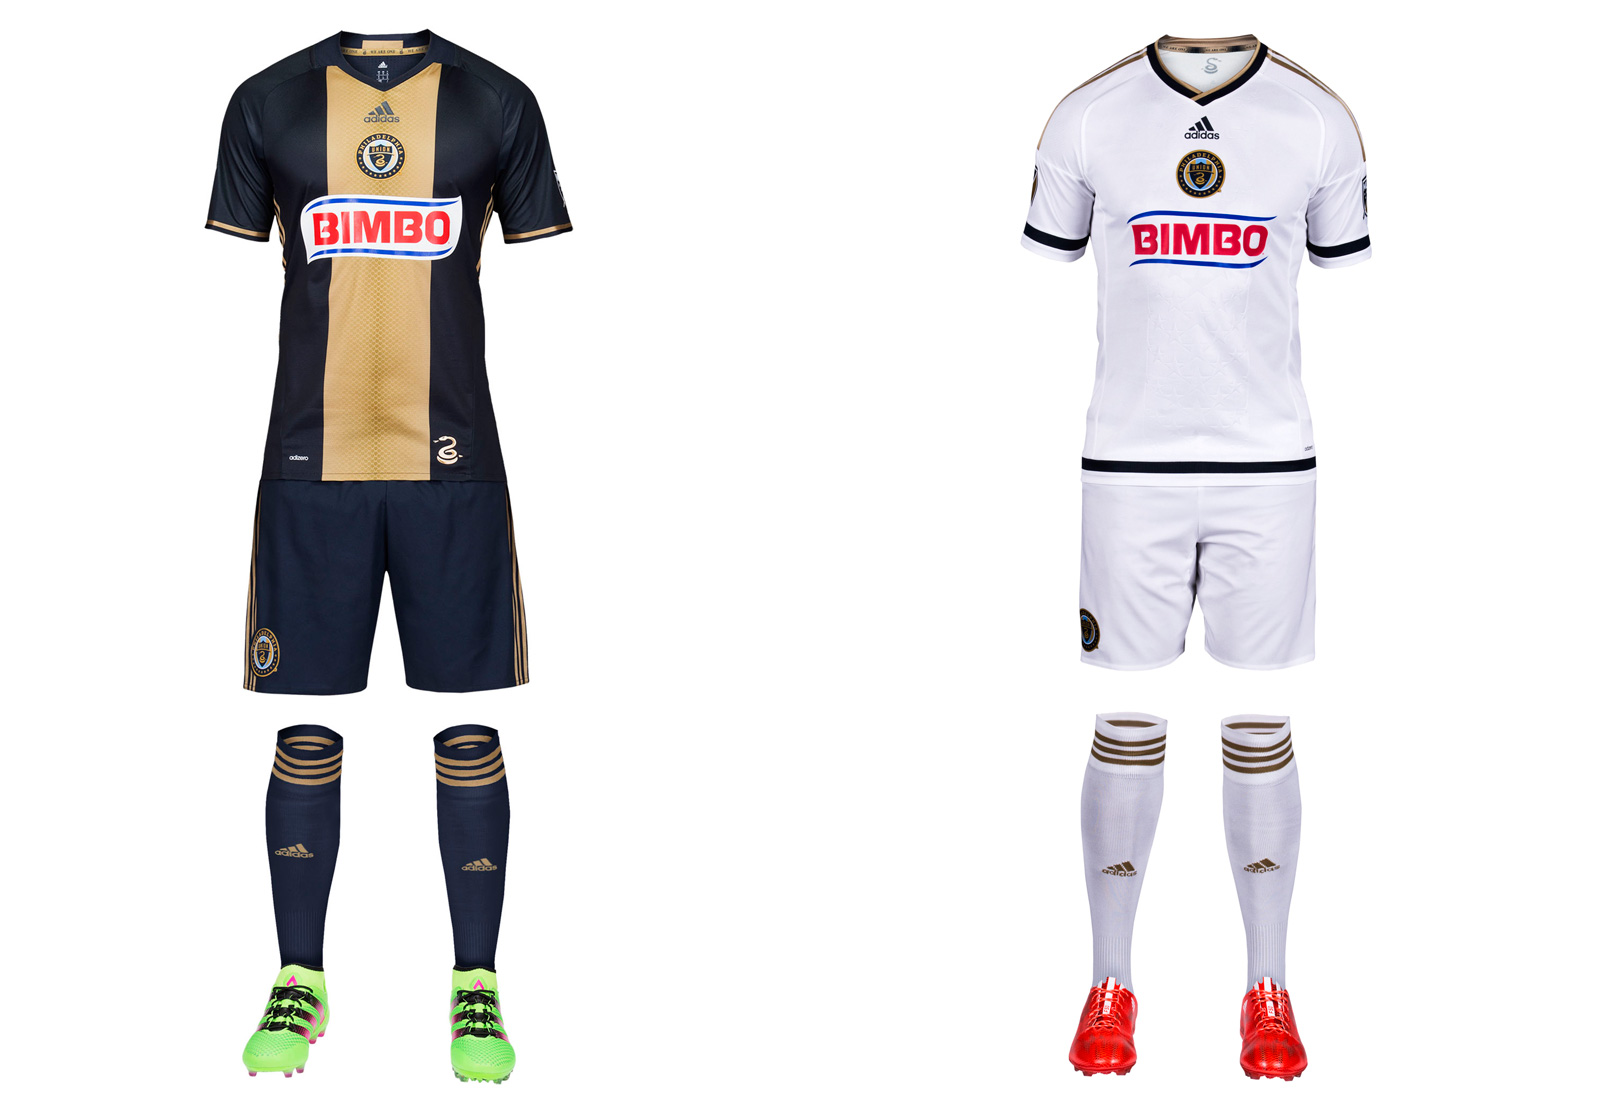 The Union's home uniform is a modern classic, apart from a garish sponsor logo that looks pasted on instead of integrated with the rest of the jersey. This year's new primary kit features a lighter gold down the middle, an understated snakeskin pattern (taken from the serpent in the club logo) and the departure of the pinstripes used in 2014-15. It's as classy and distinctive a set as you'll find. If only Bimbo could cooperate. Meanwhile, we're stuck with the regrettable, lazy away kit for one more season.